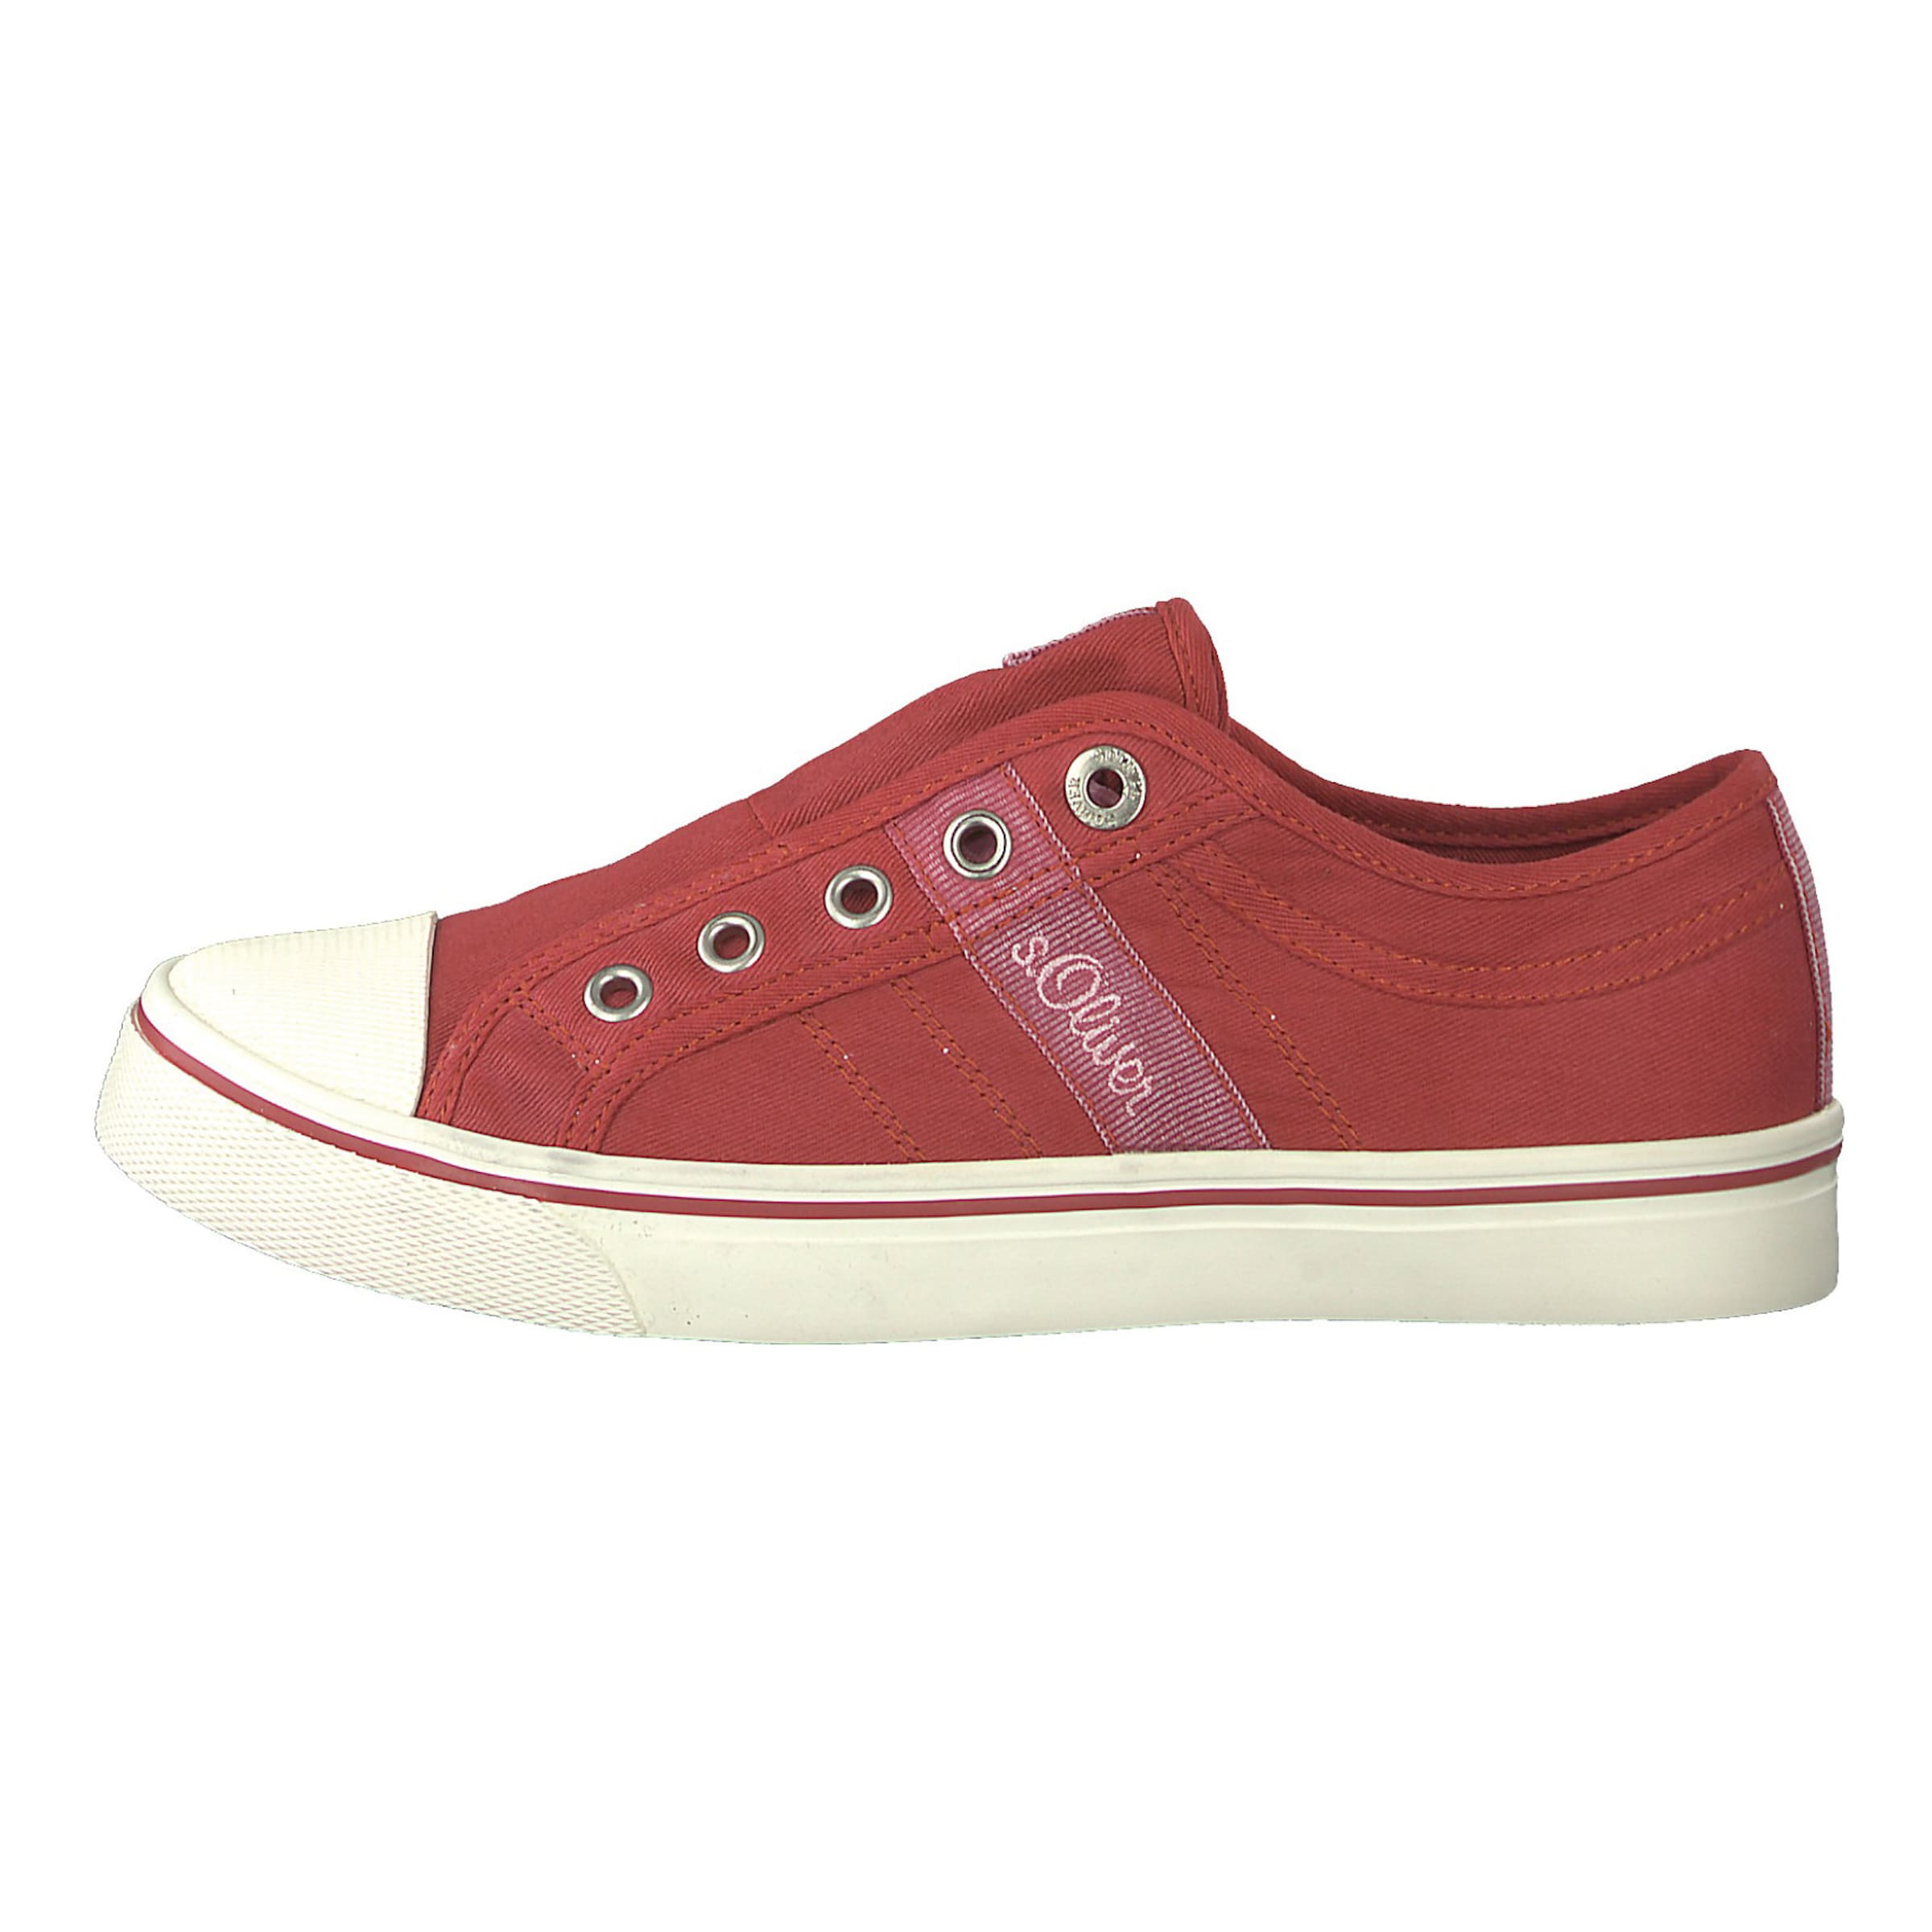 In Low oliver S Sneakers BeigeRot vNn0m8wO